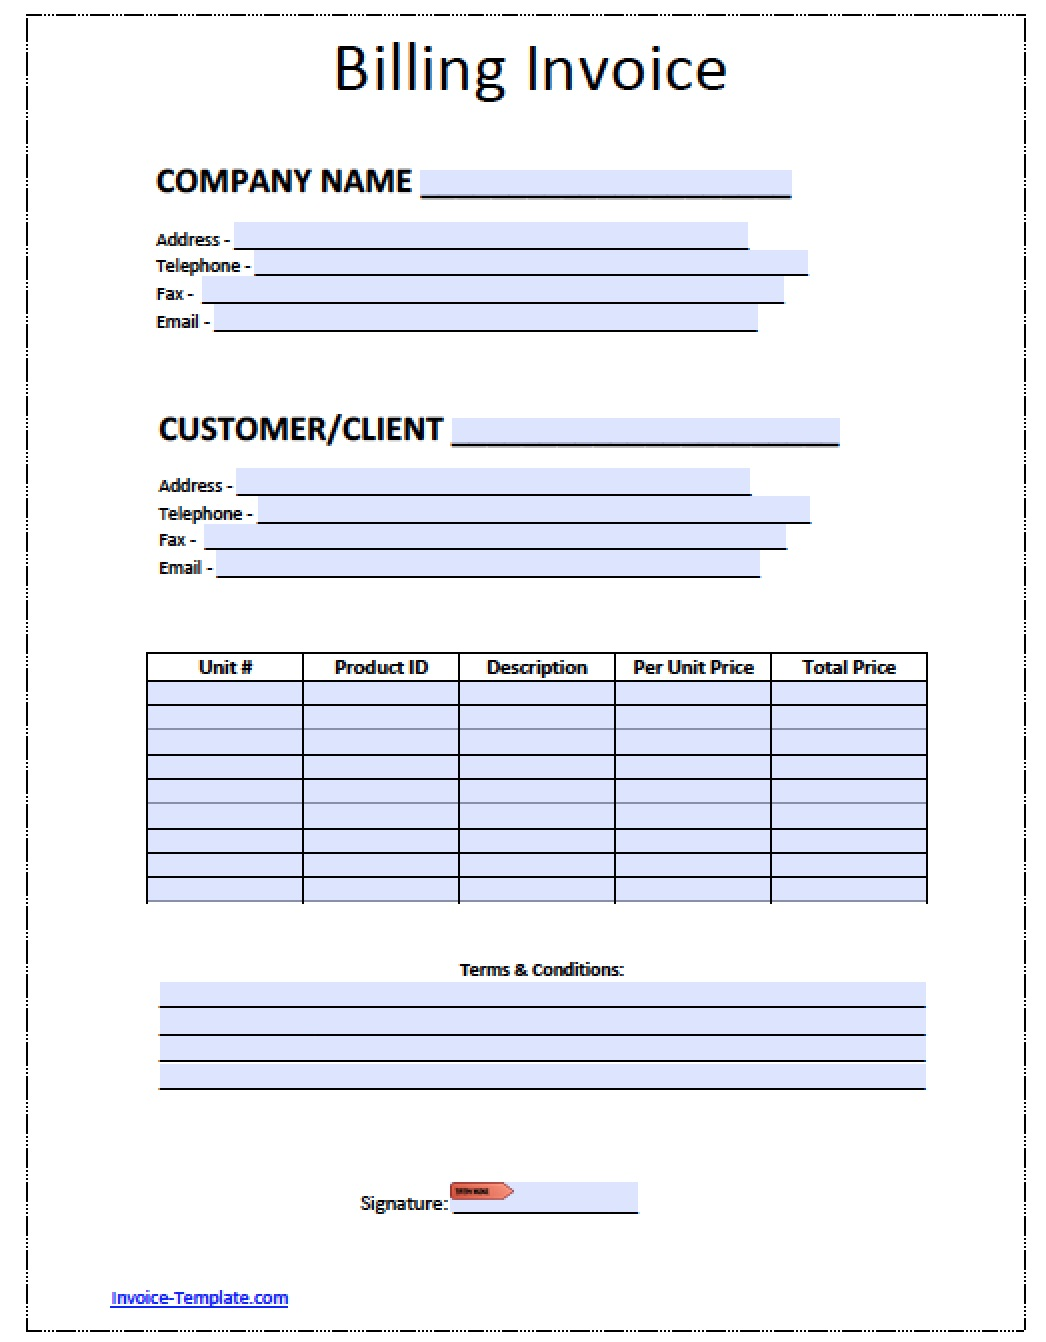 Reliefworkersus  Winning Billing Invoice Invoices Faq U Cloudflare Support Billing  With Heavenly Free Billing Invoice Template  Excel  Pdf  Word Doc  Billing With Endearing Invoice Template Word  Also Sample Invoice For Legal Services In Addition Ups Invoice Payment And Create My Own Invoice As Well As Siemens Online Invoice Additionally Invoice Record Keeping Template From Happytomco With Reliefworkersus  Heavenly Billing Invoice Invoices Faq U Cloudflare Support Billing  With Endearing Free Billing Invoice Template  Excel  Pdf  Word Doc  Billing And Winning Invoice Template Word  Also Sample Invoice For Legal Services In Addition Ups Invoice Payment From Happytomco